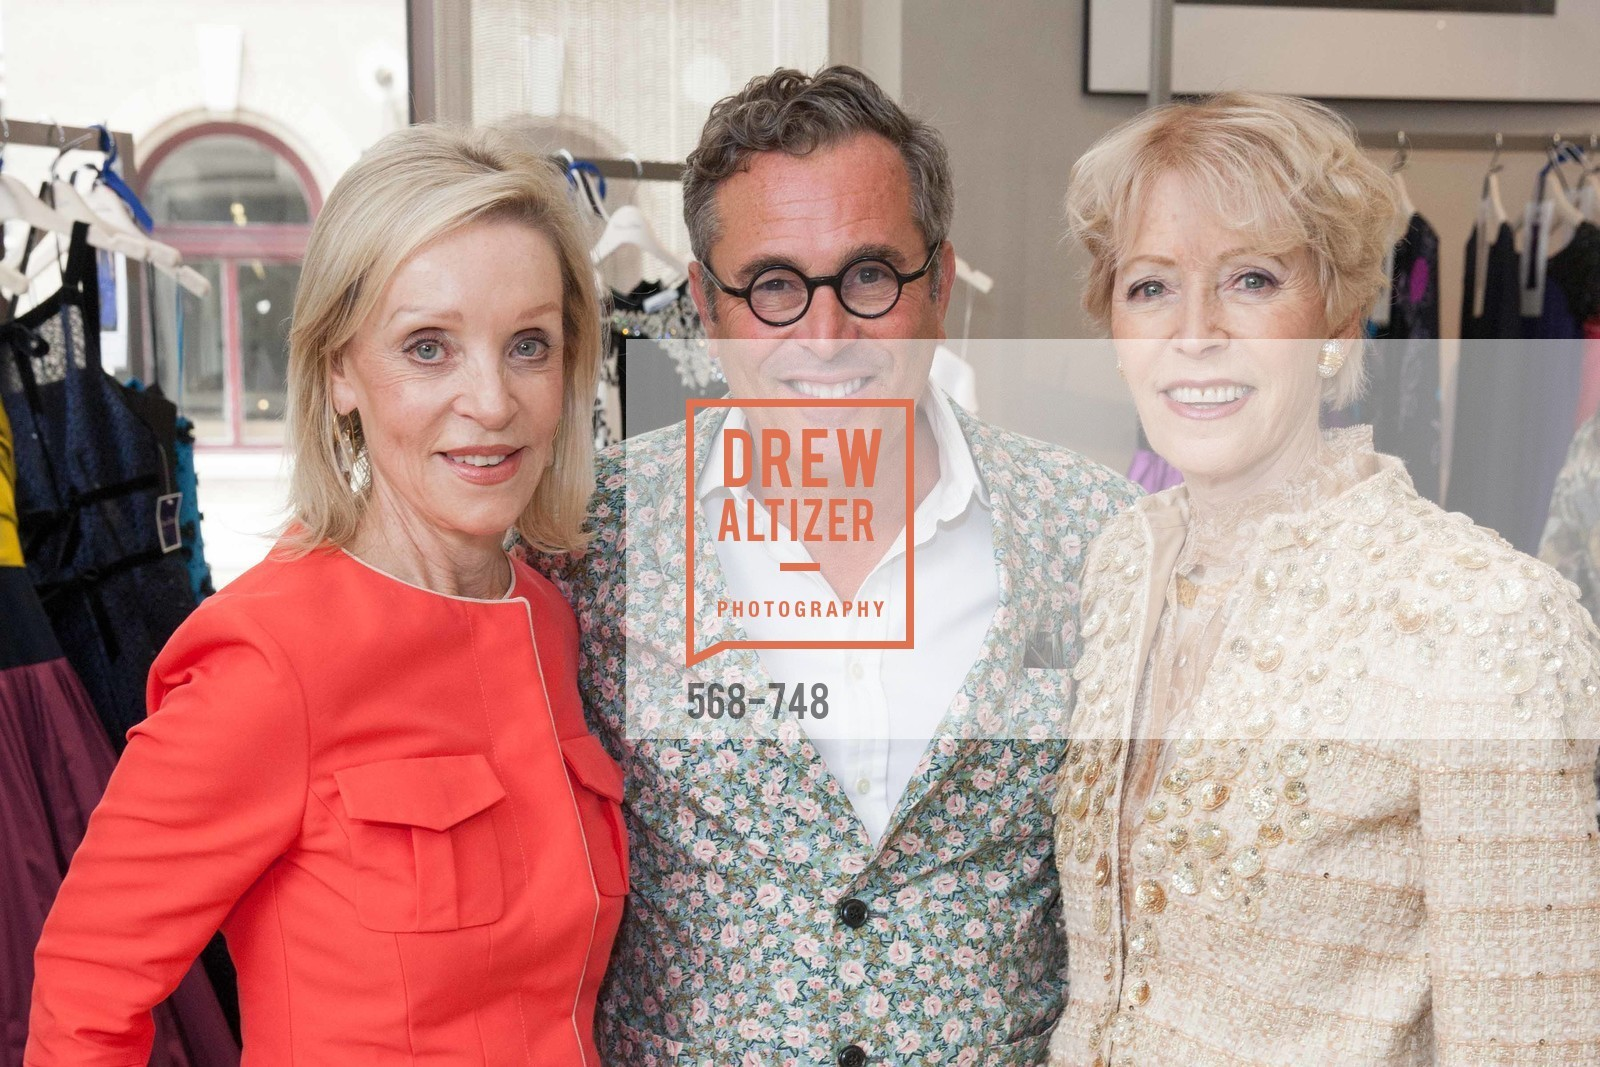 Barbara Brown, Ricky Serbin, Barbara Brookins-schneider, PETER COPPING'S Personal Appearance at SAKS FIFTH AVENUE, US, May 22nd, 2015,Drew Altizer, Drew Altizer Photography, full-service agency, private events, San Francisco photographer, photographer california